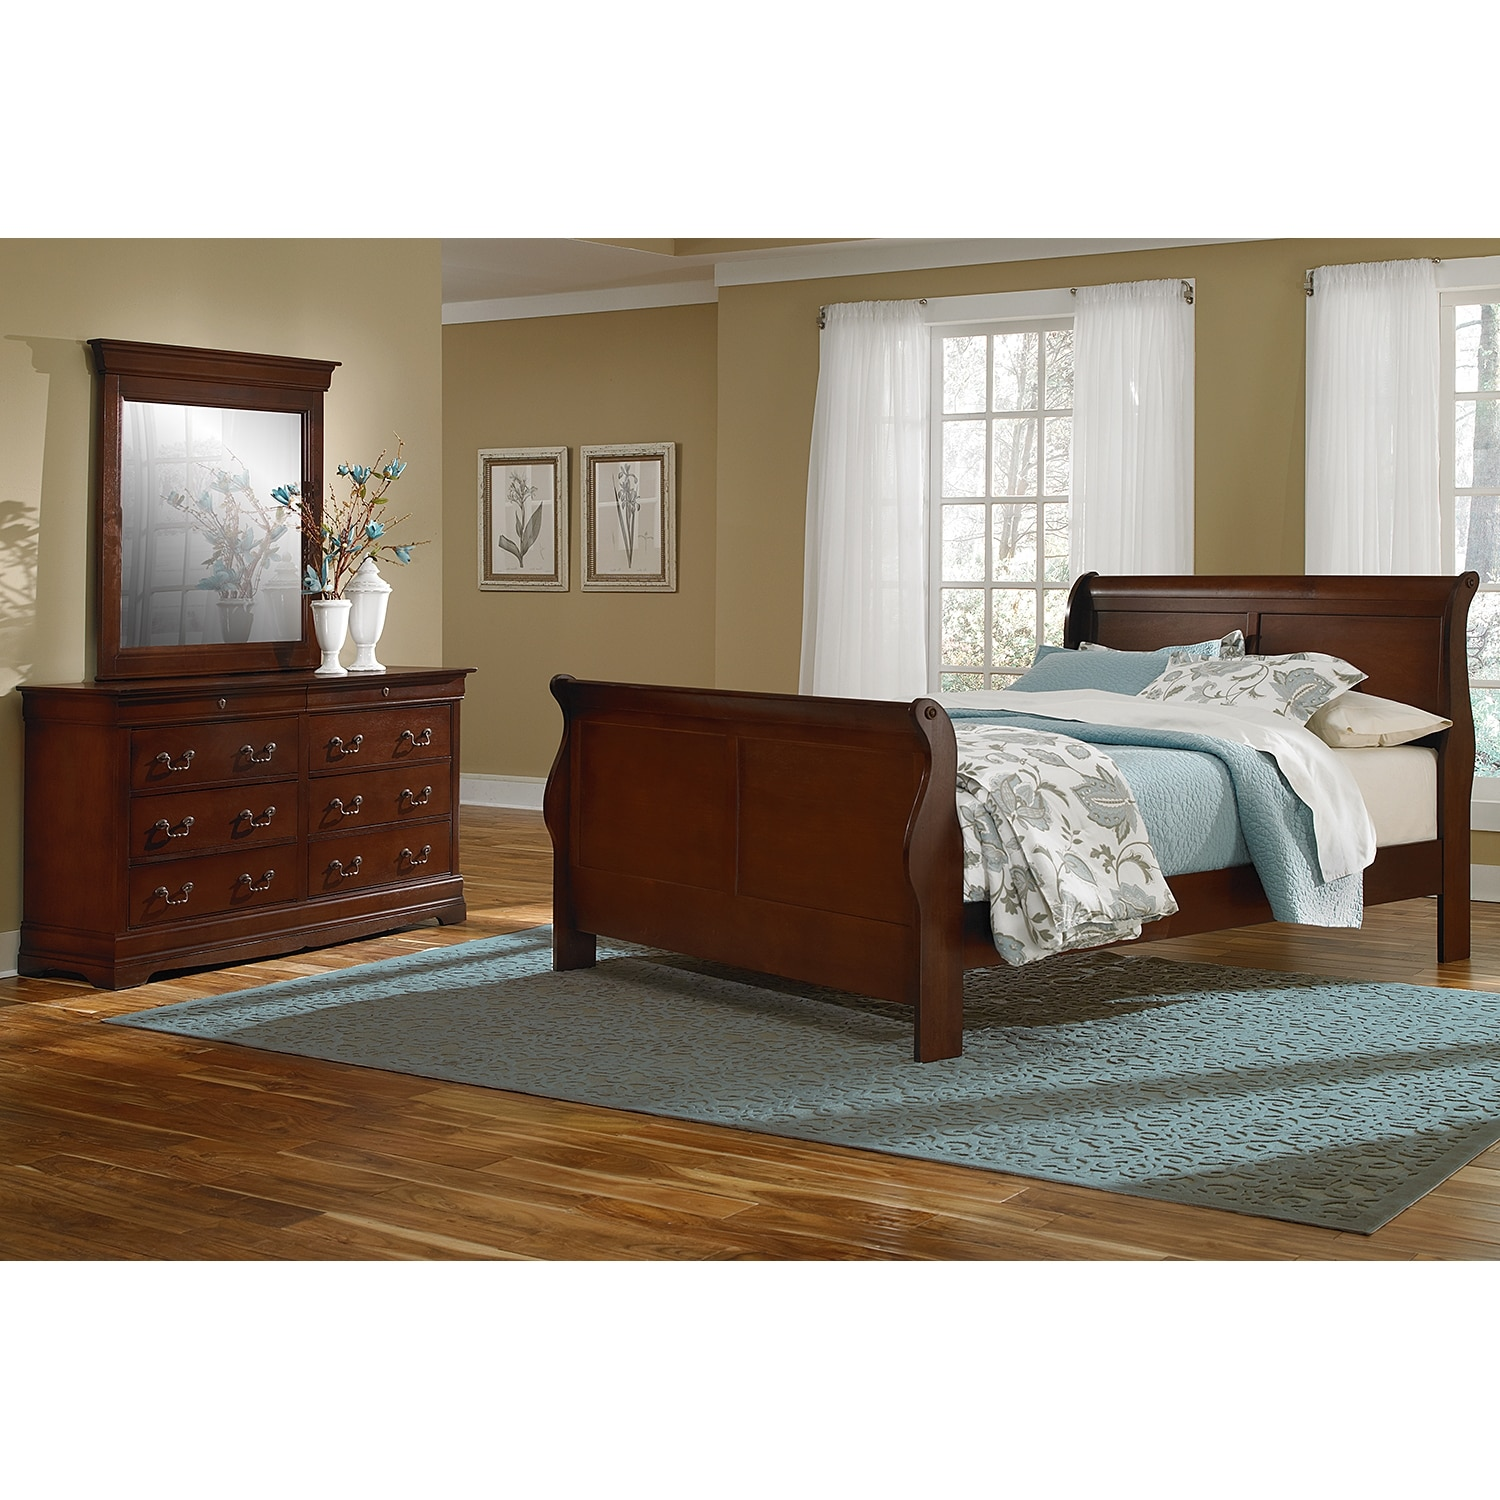 neo classic nightstand cherry american signature furniture. Black Bedroom Furniture Sets. Home Design Ideas